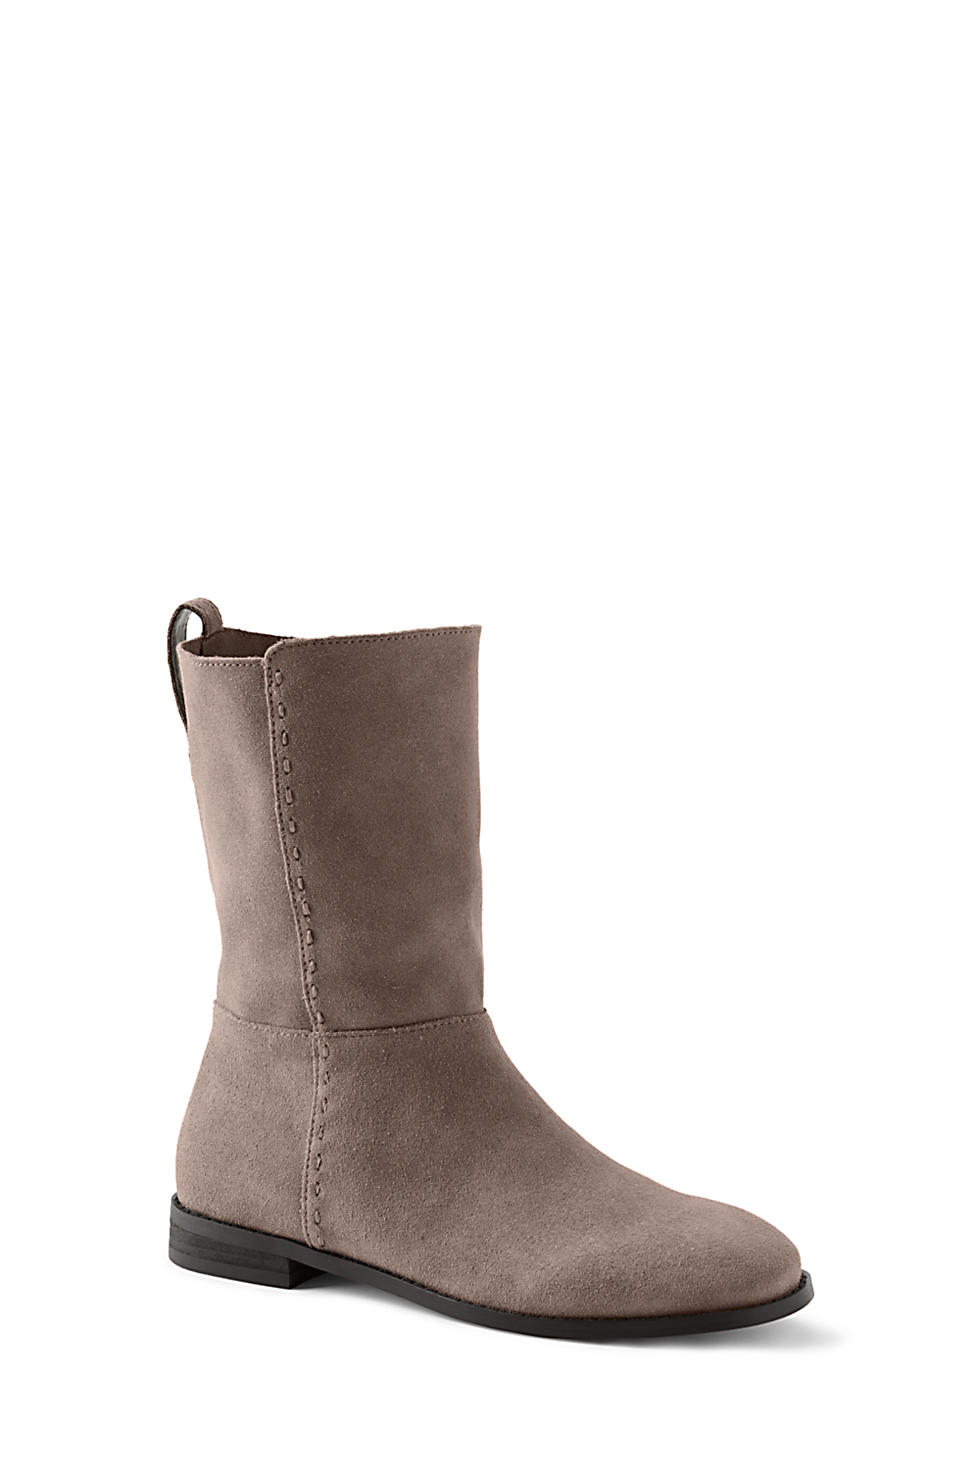 Lands' End Women's Suede Leather Mid Calf Flat Boots (2 color options)